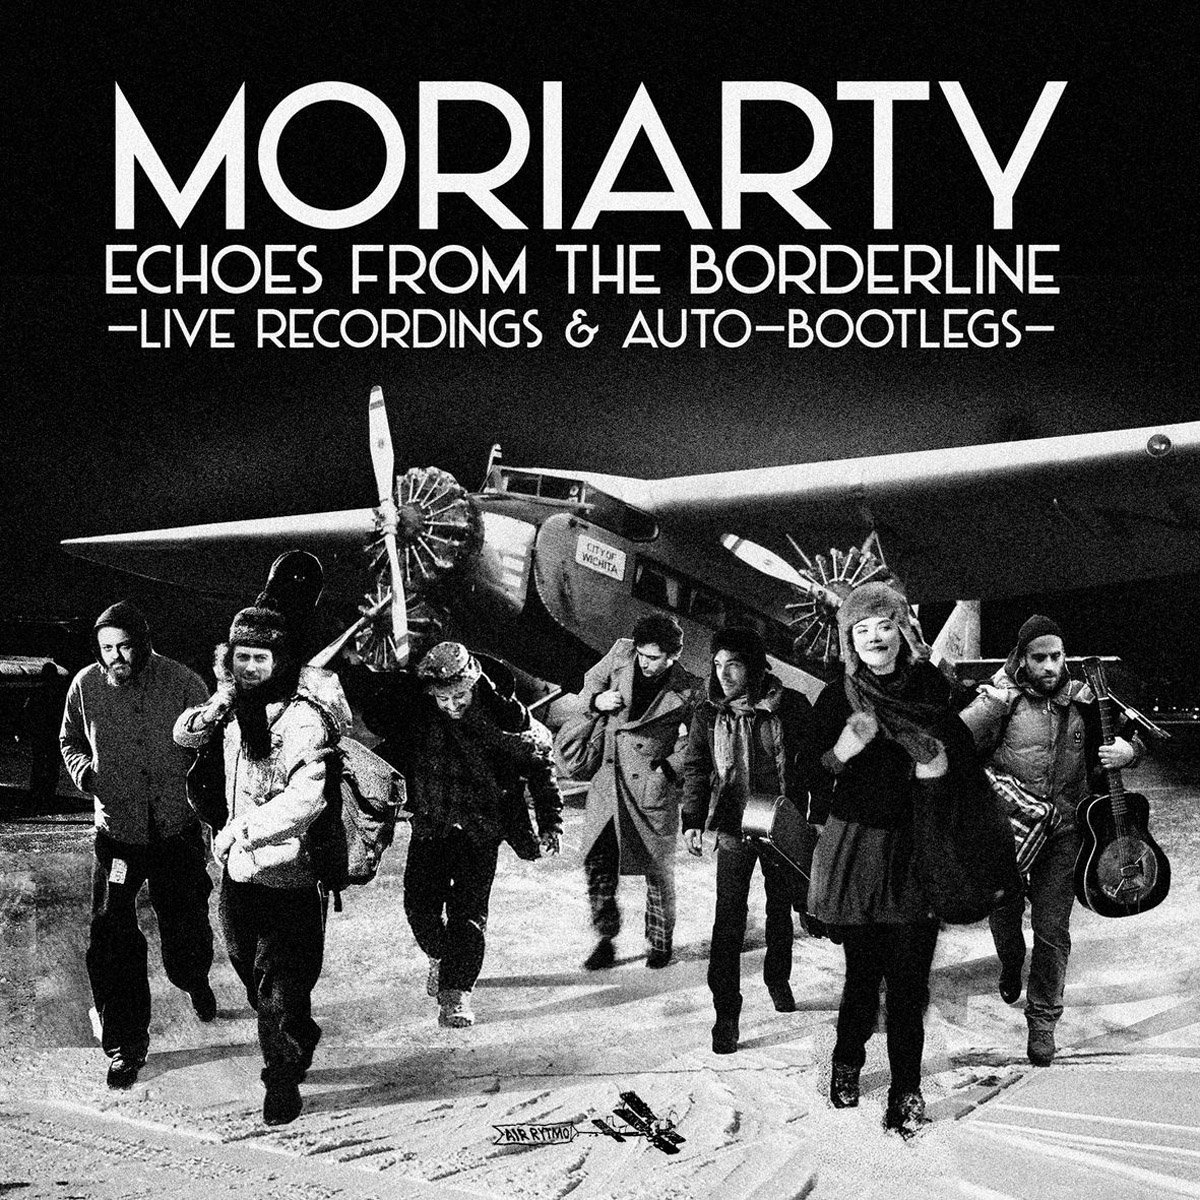 Echoes from The Borderline: Moriarty: Amazon.fr: Musique